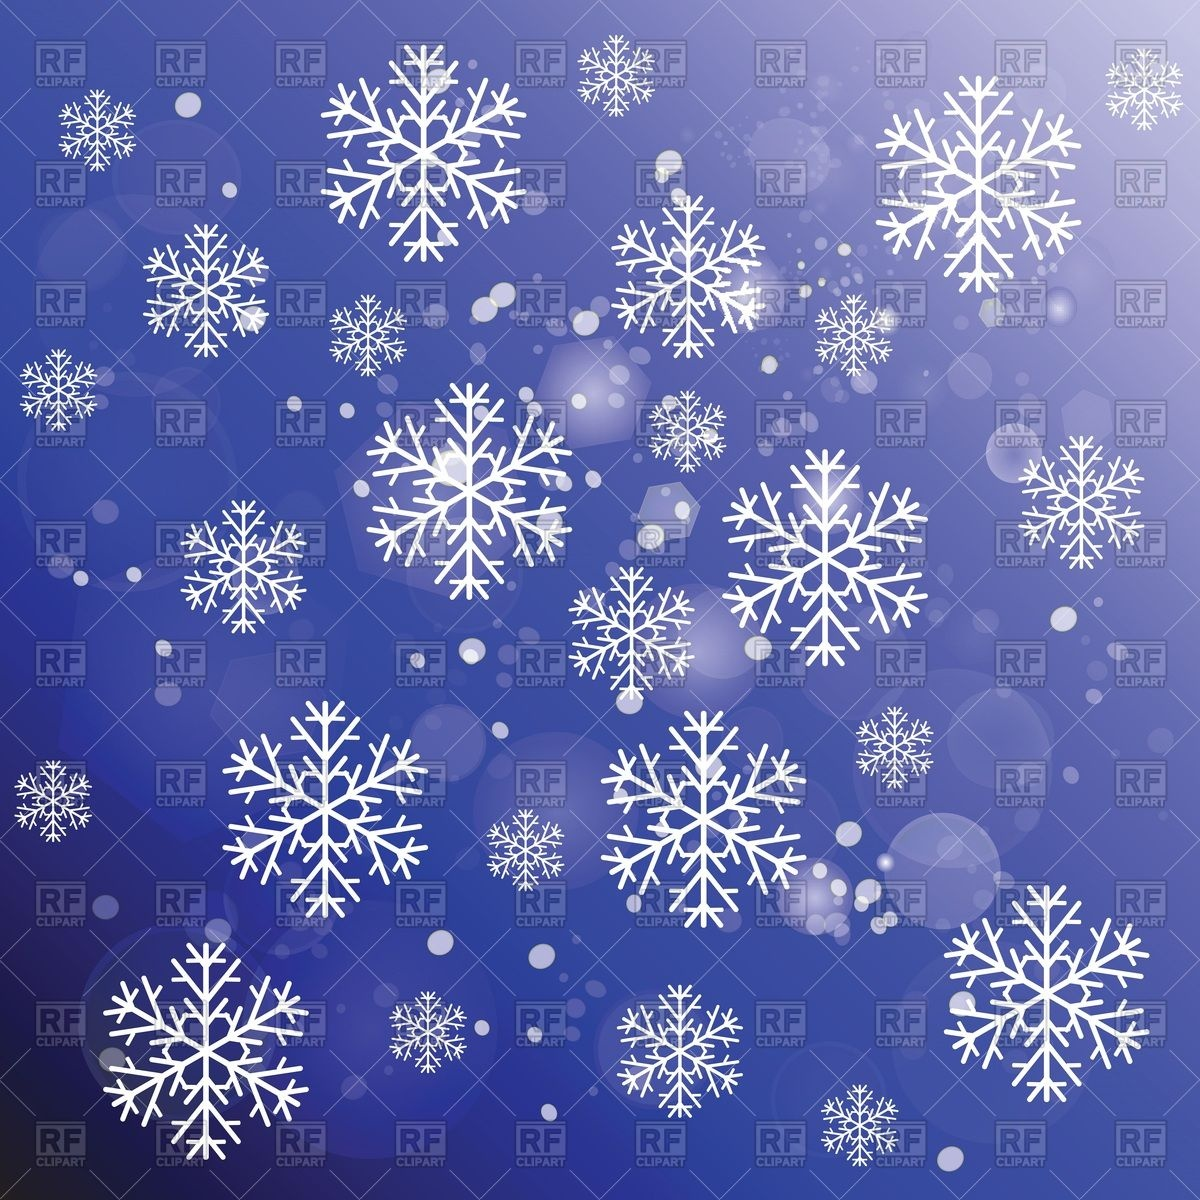 1200x1200 Winter Holiday Greeting Card With Snowflakes And Snowfall Vector